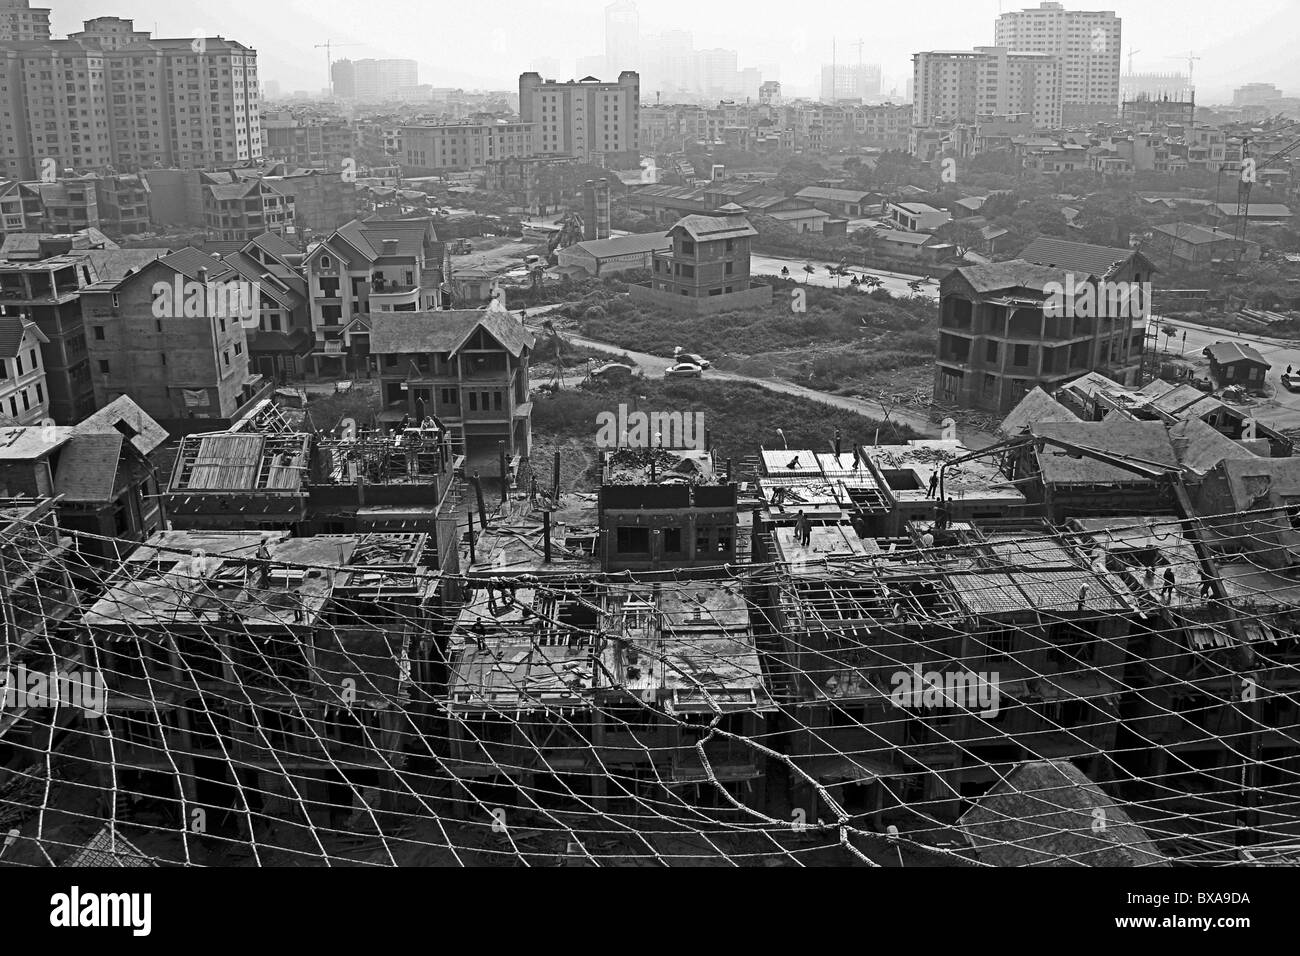 Taken in the Cau Giay district in HanoÏ, Vietnam. It shows urbanization process in the Vietnamese city. - Stock Image